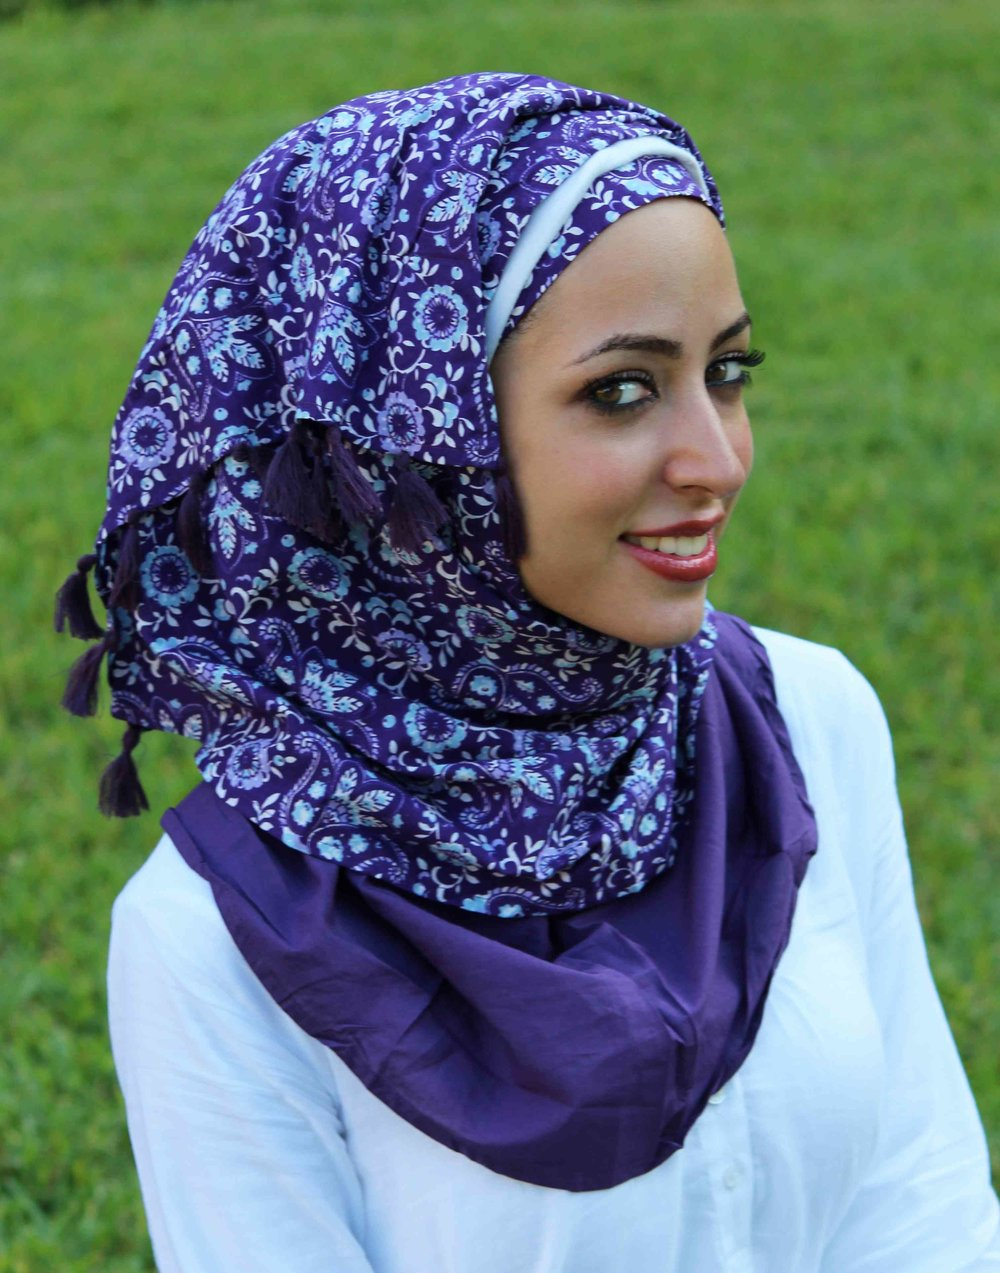 f794fdaa7af7f Syrian women frequently wear their hijab wrapped around their head and  secured with pins. They often also wear undercaps and create drapes at the  top of ...